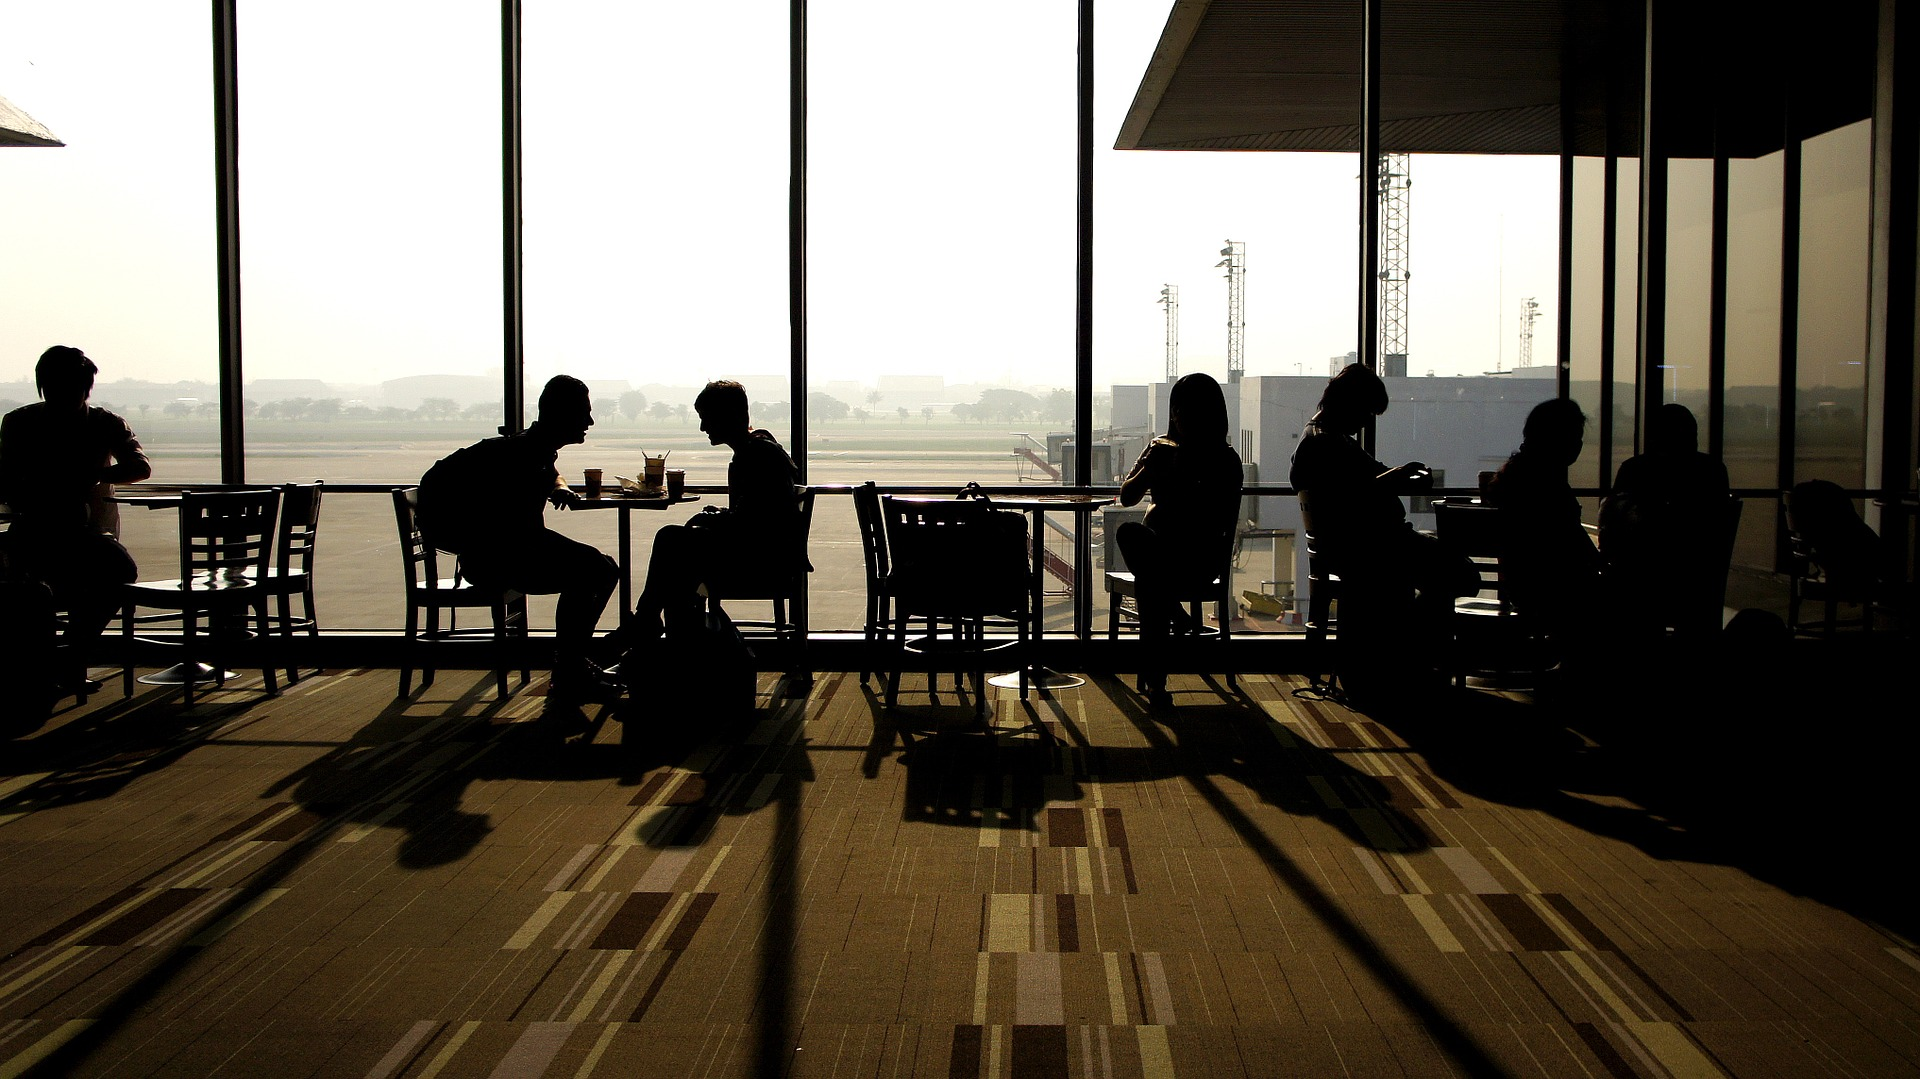 Striking up a conversation with a fellow traveler isn't the worst way to kill some downtime at the airport (Image:  Pixabay )